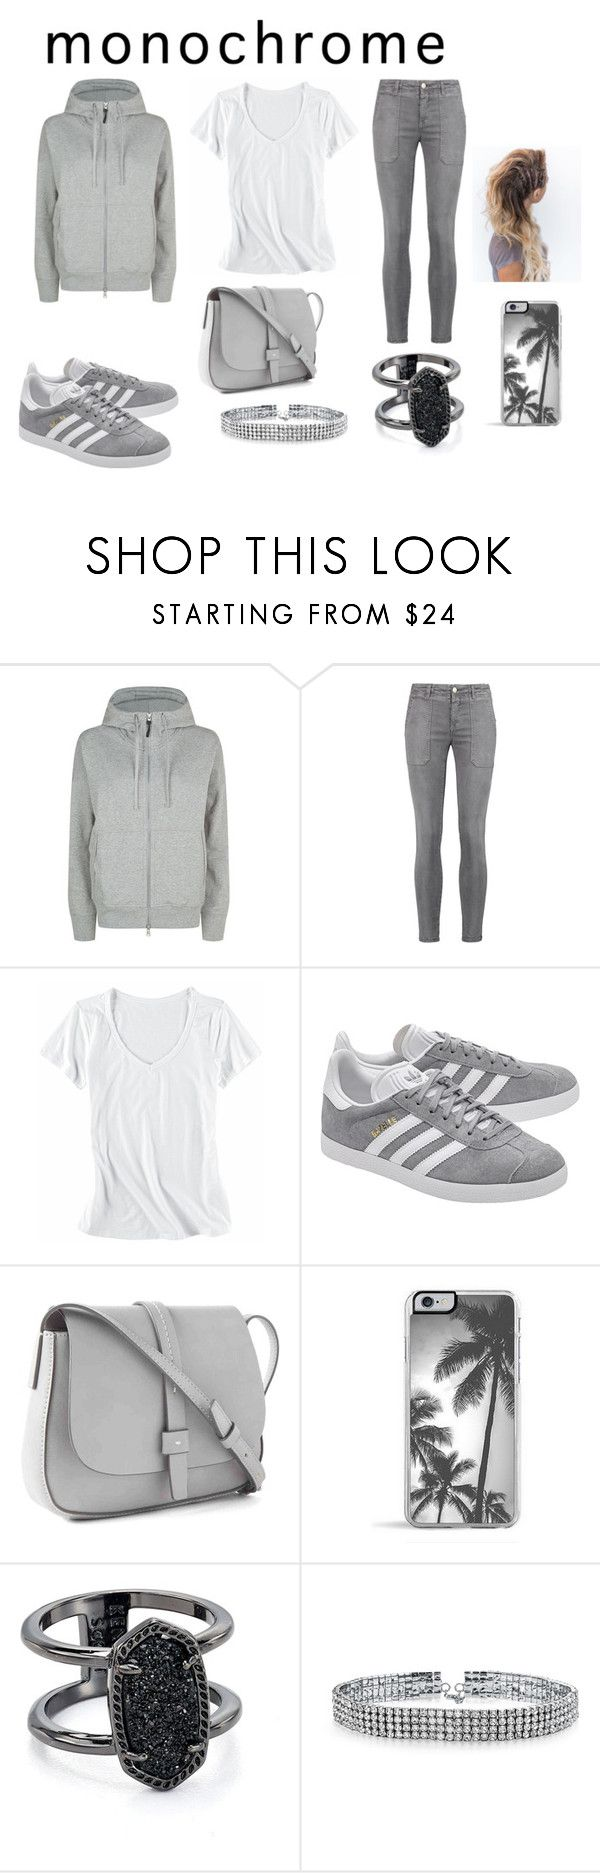 """grey perfection"" by ibored111 ❤ liked on Polyvore featuring adidas, Current/Elliott, Horny Toad, adidas Originals, Gap, Zero Gravity, Kendra Scott, Bling Jewelry and contest"